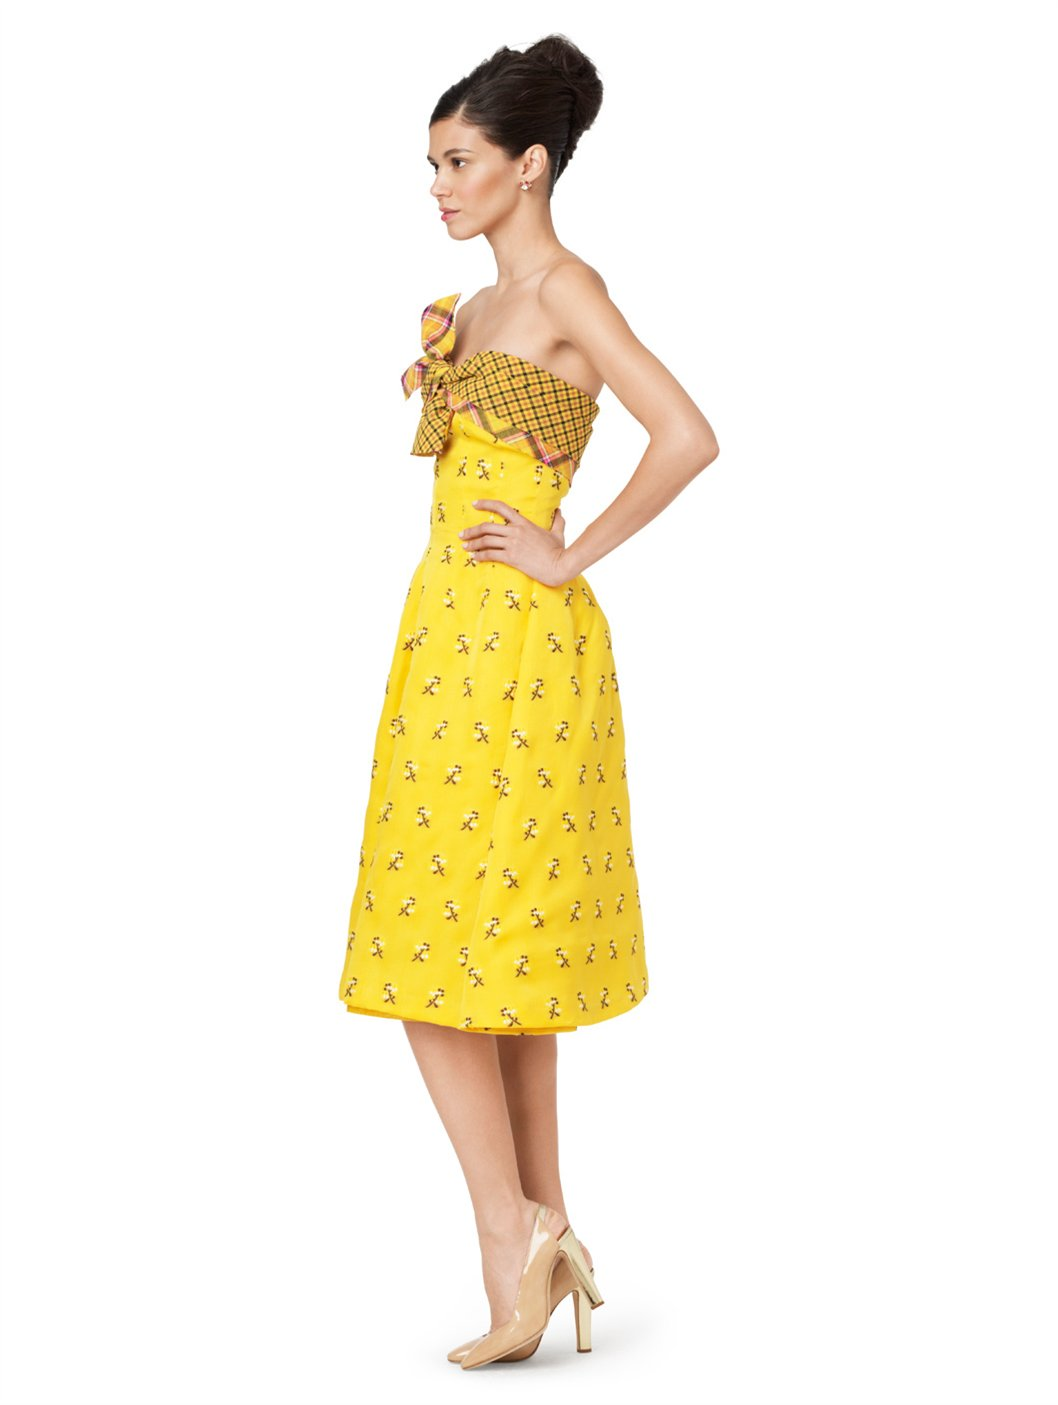 Jeelry ith yellow dress 714